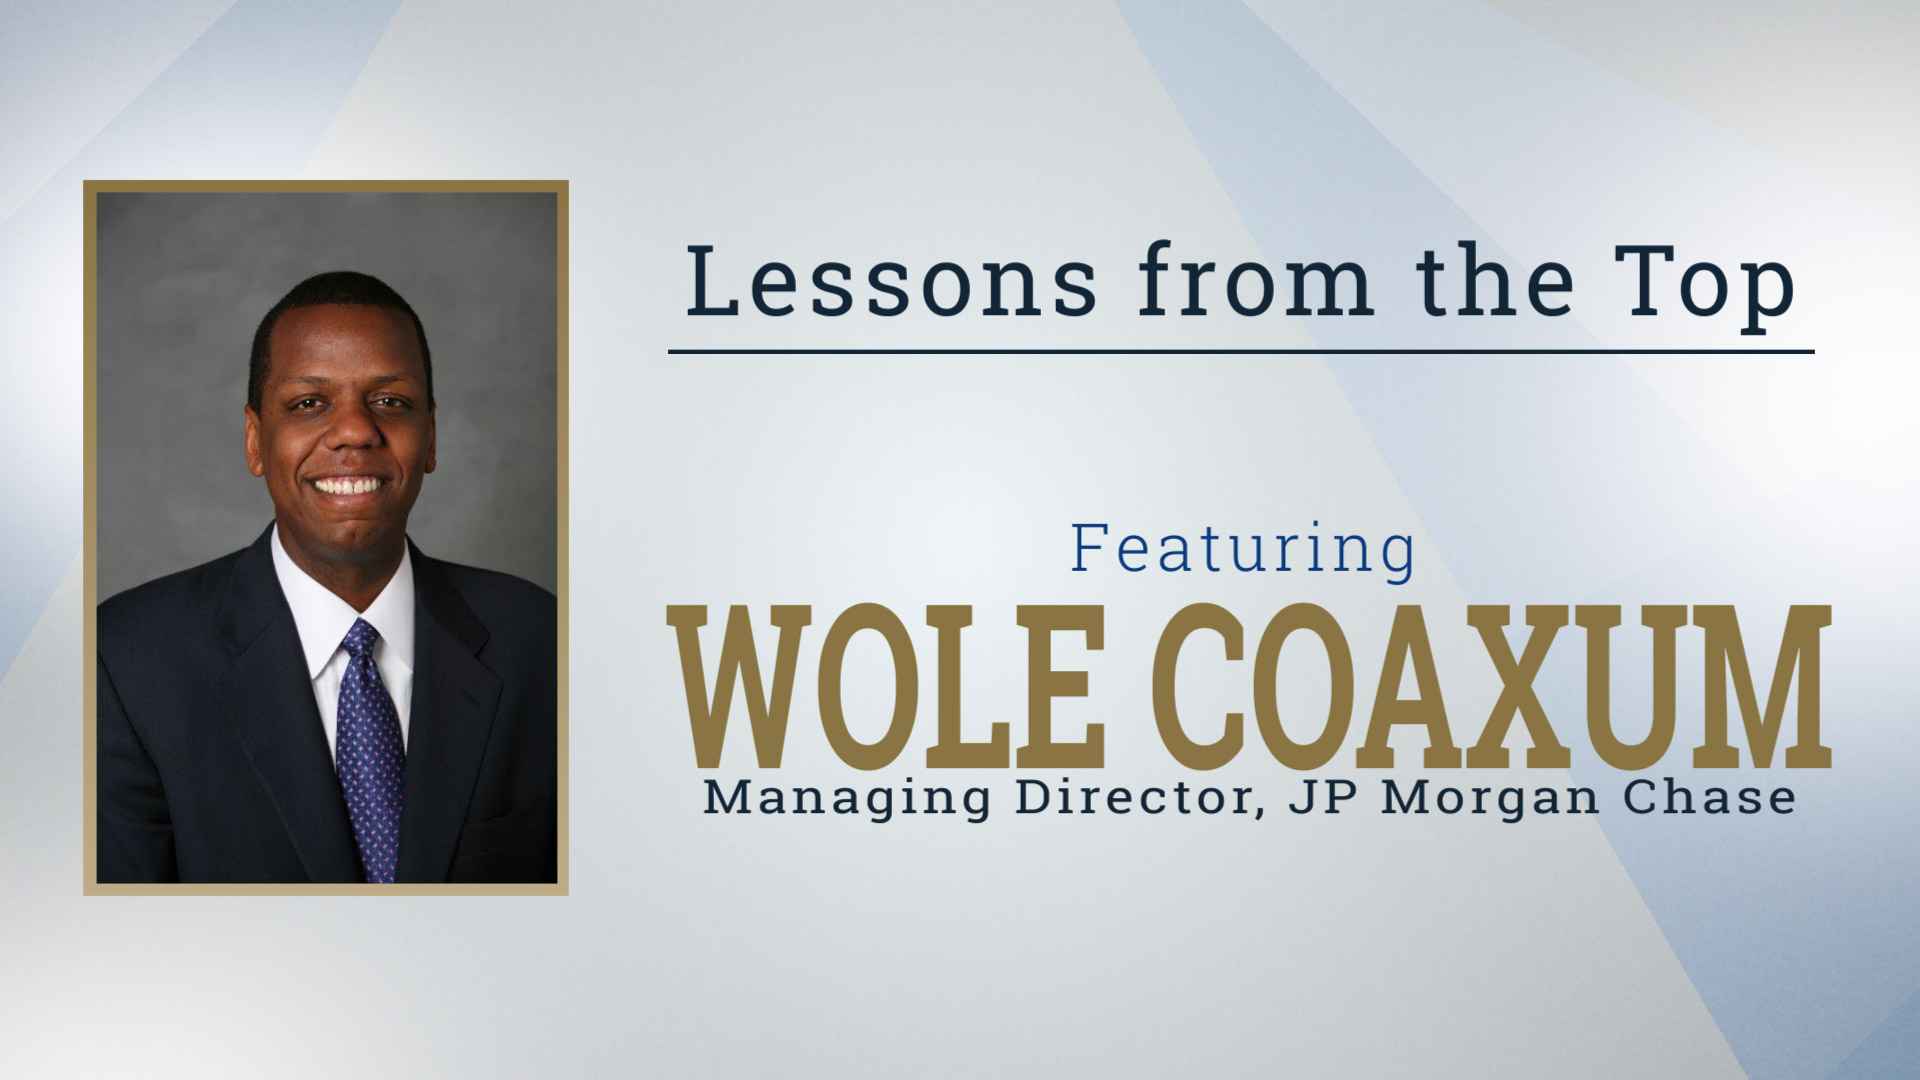 Lessons from the Top Featuring Wole Coaxum